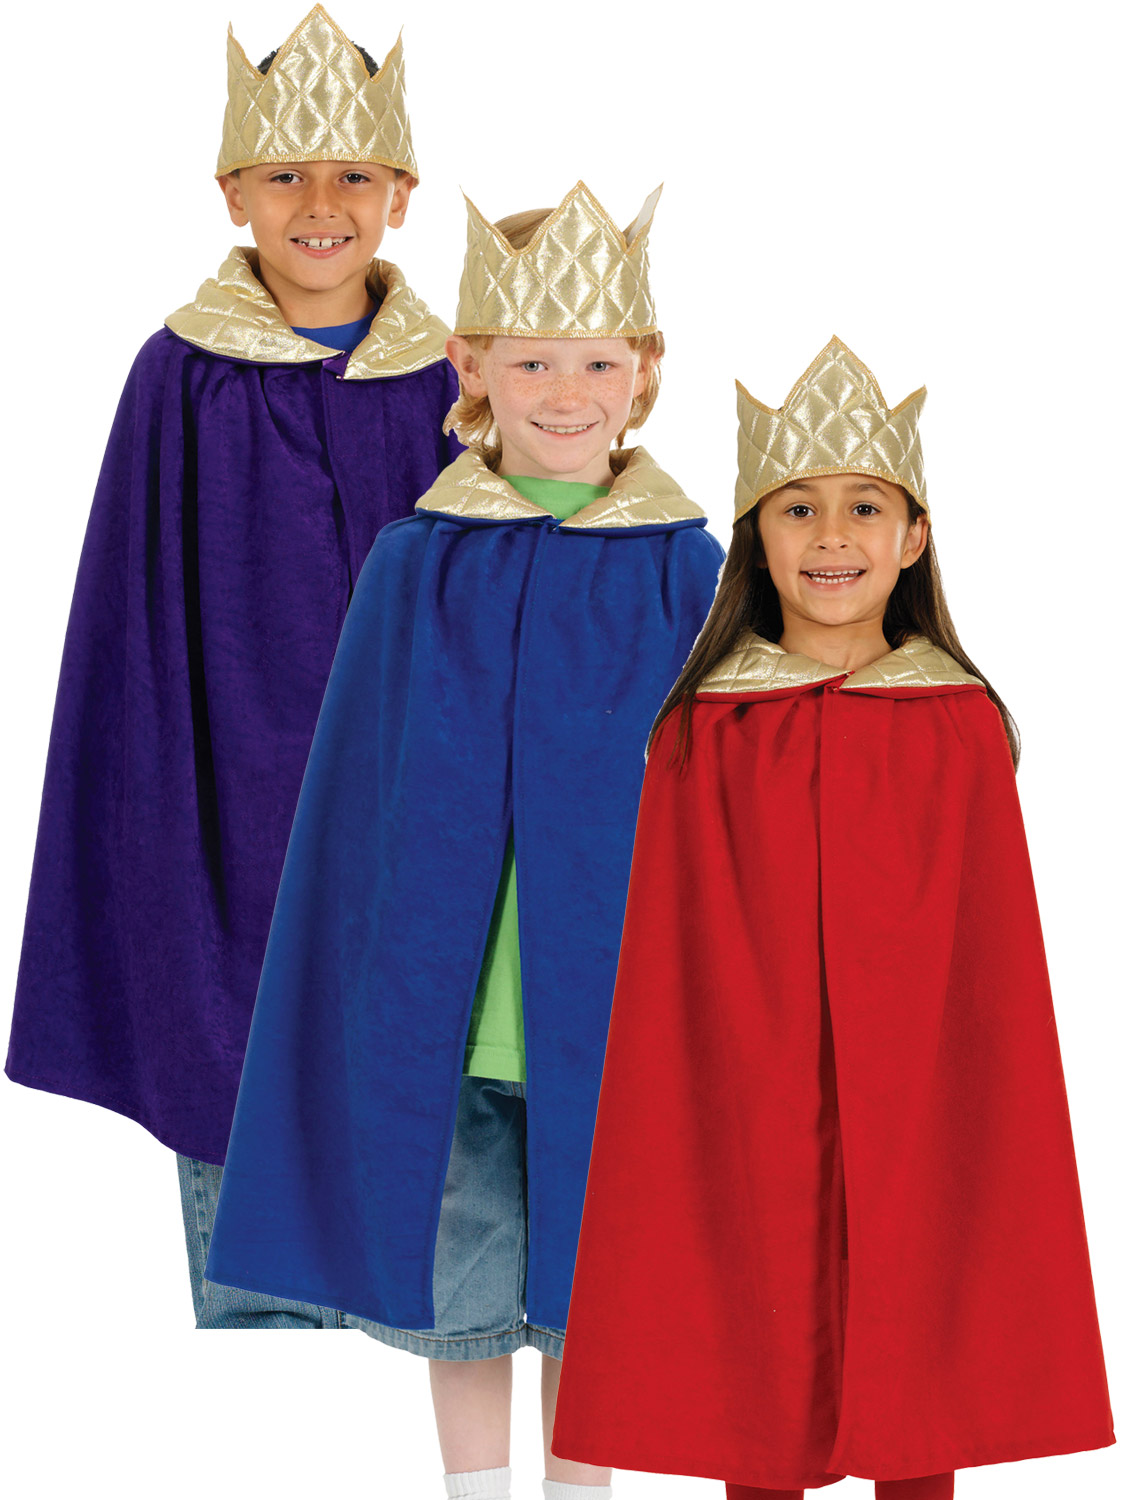 Kids Christmas Dress Australia.Details About Childs Nativity King Costume Boys Girls Christmas Fancy Dress Kids Xmas Outfit